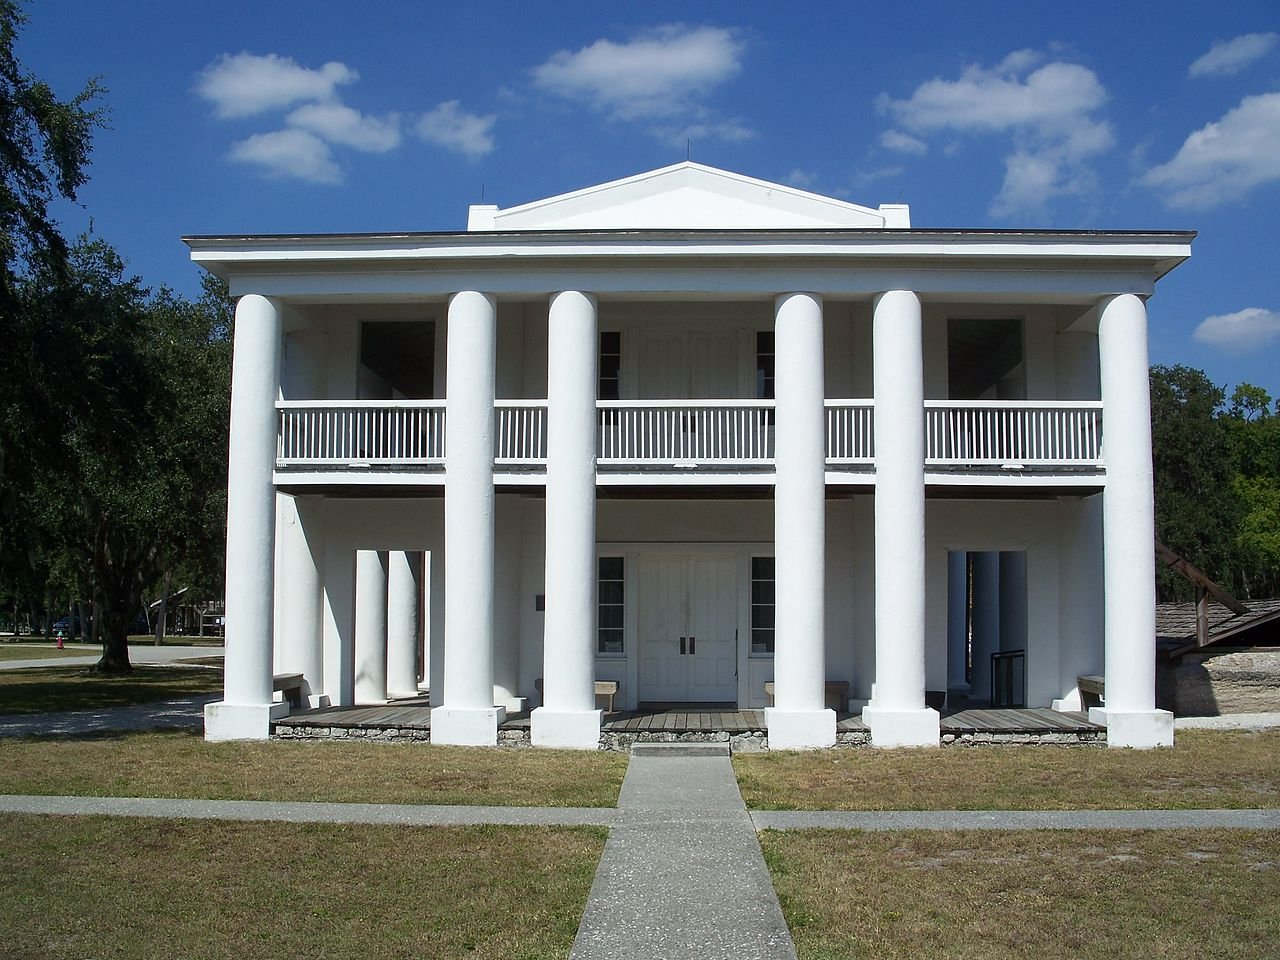 The Gamble Mansion was built in 1850, making it the oldest house on Florida's west coast.